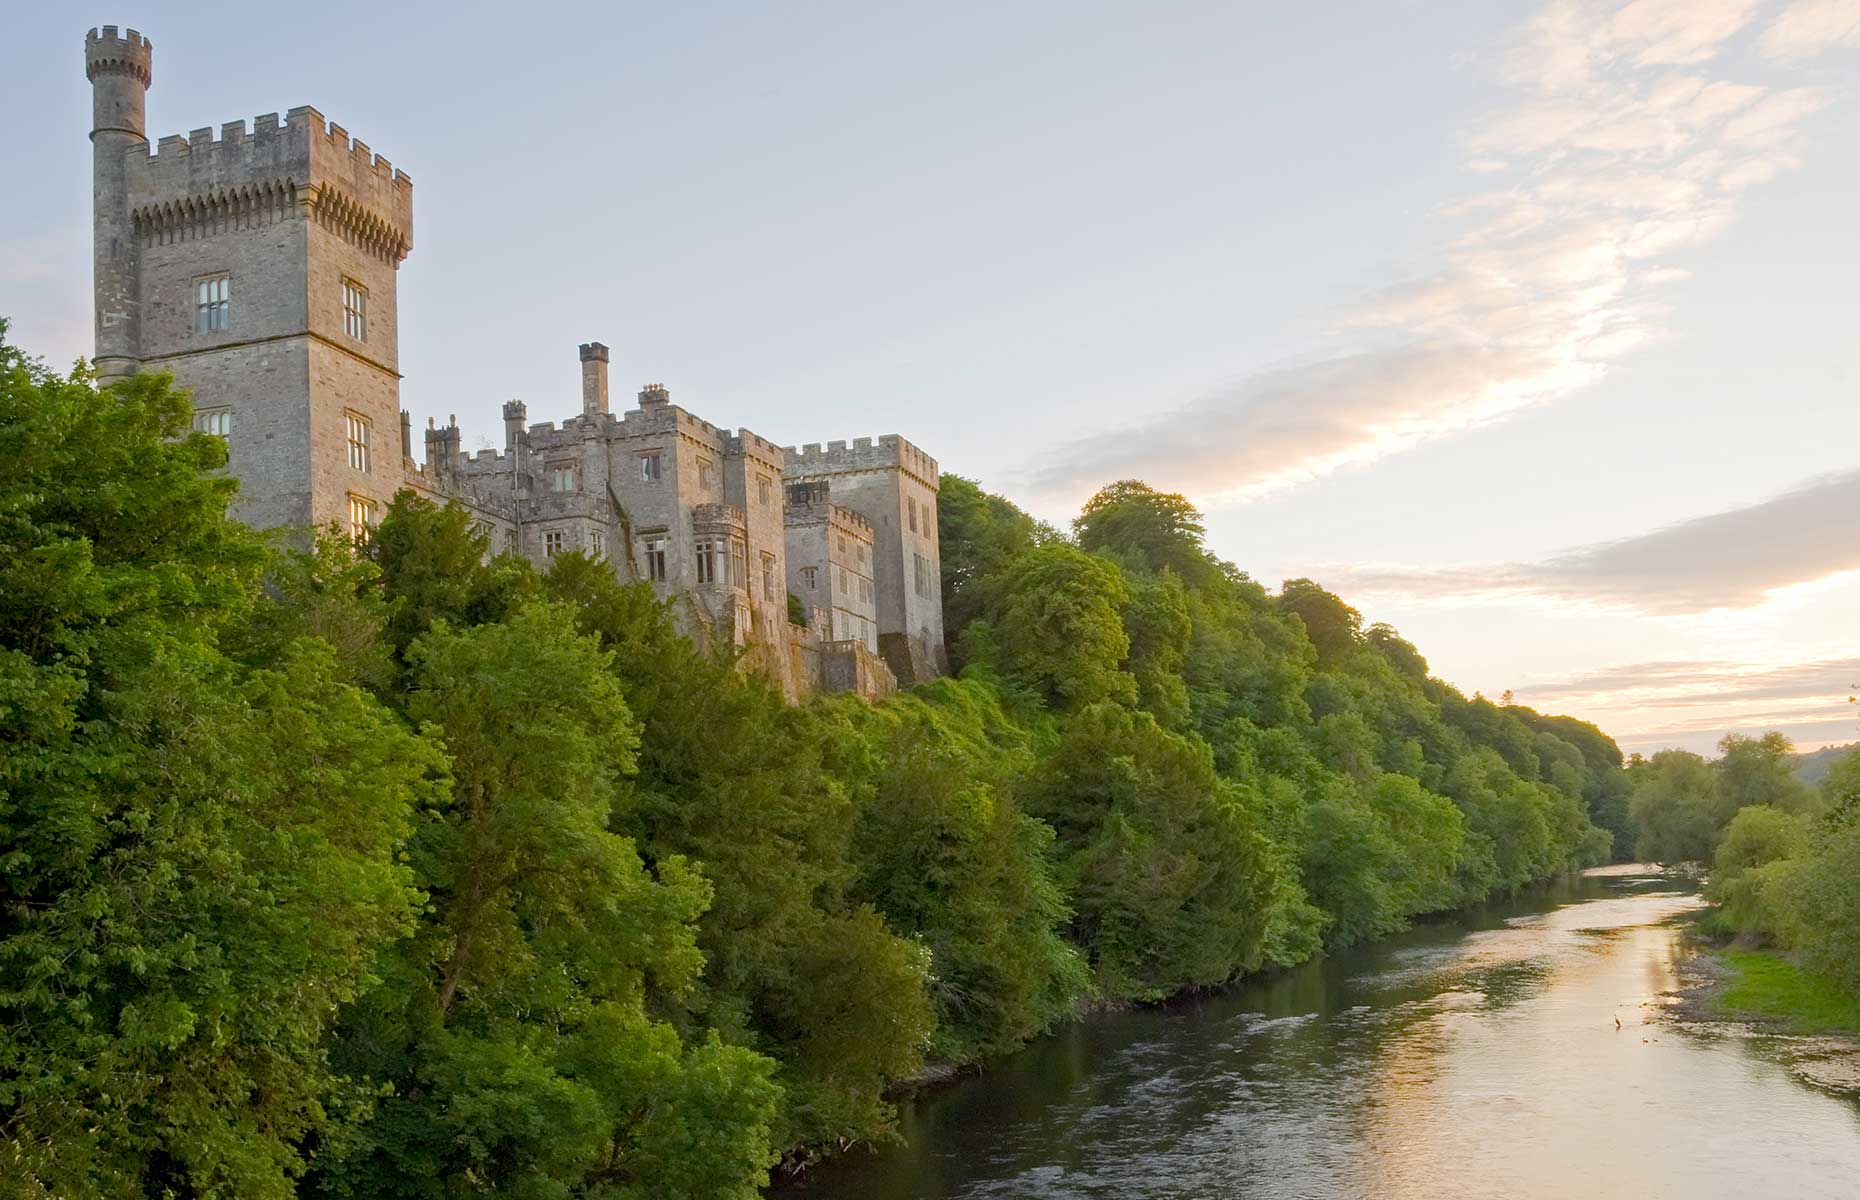 Lismore Castle, County Waterford (walshphotos/Shutterstock)